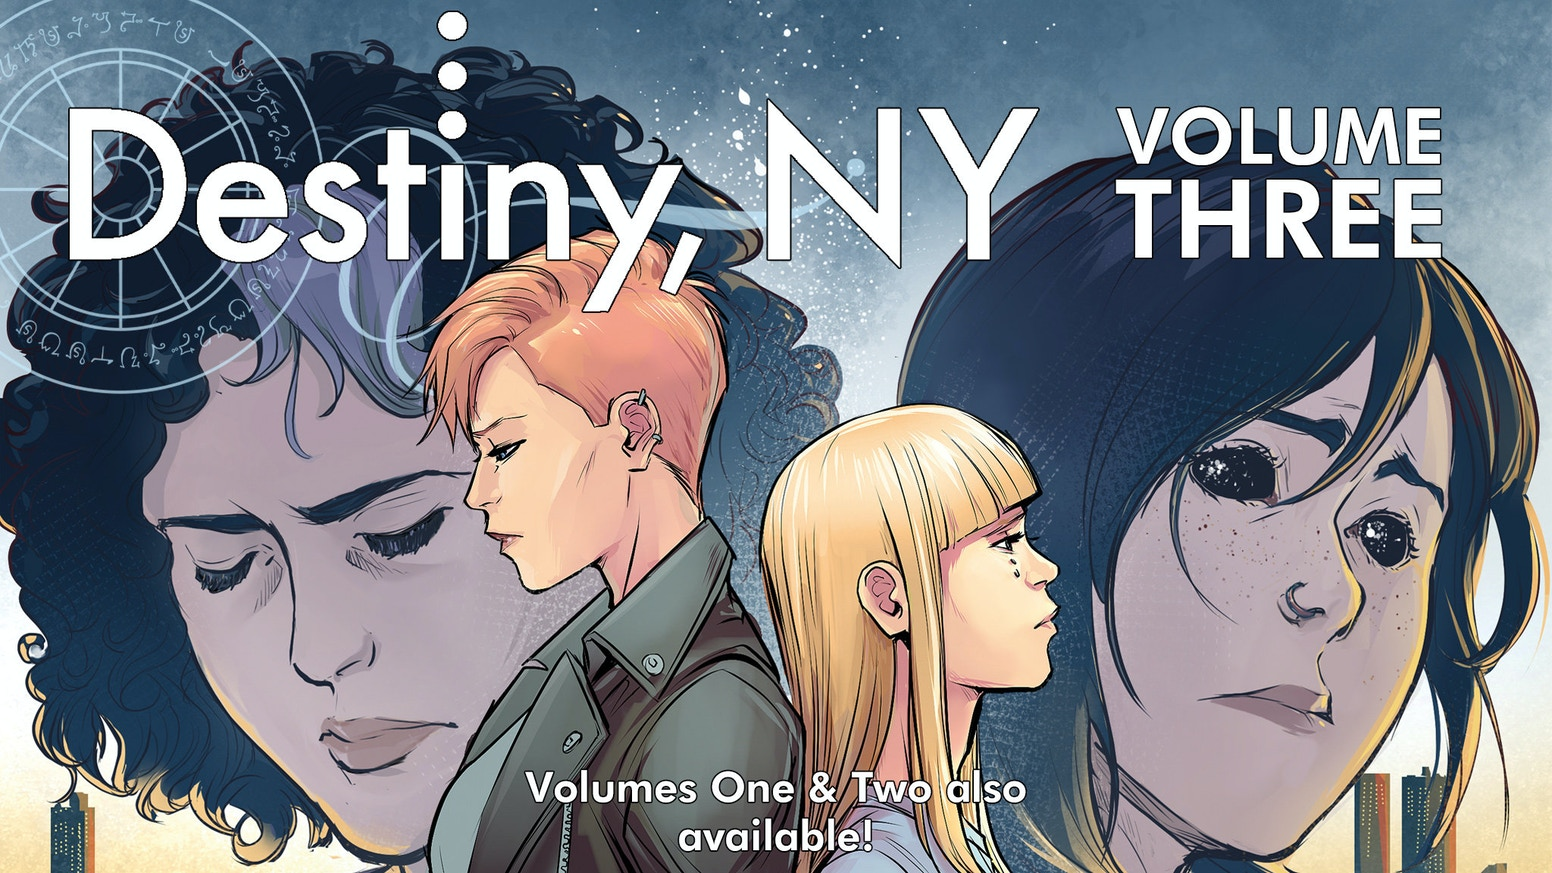 Destiny Ny Volume Three Volumes 1 3 Available By Pat Shand